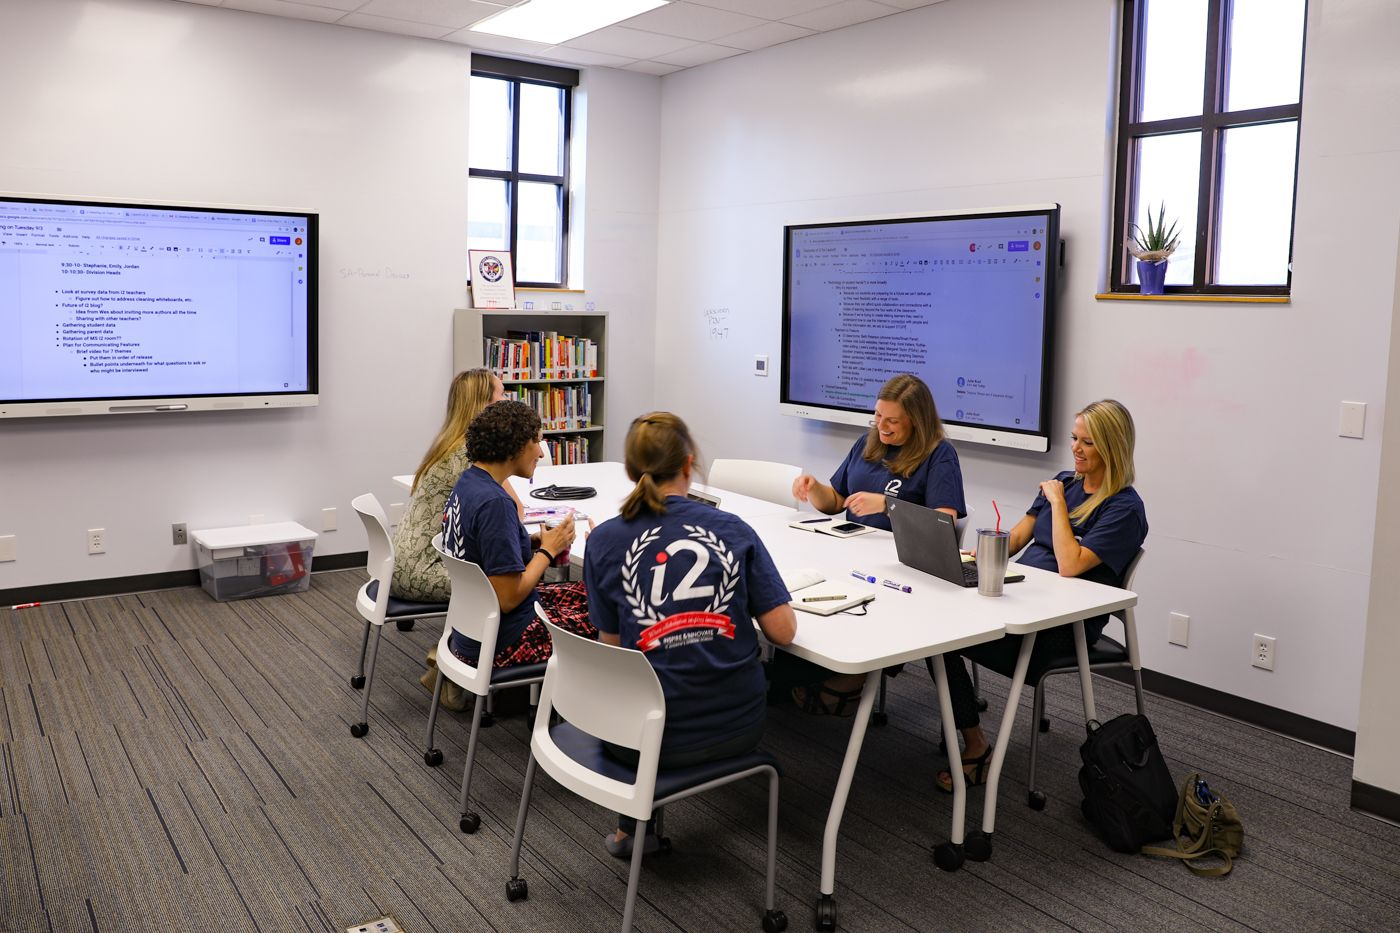 i2 Labs are brainstorming hubs where teachers can go for professional support, additional resources, and fine-tuning of ideas.